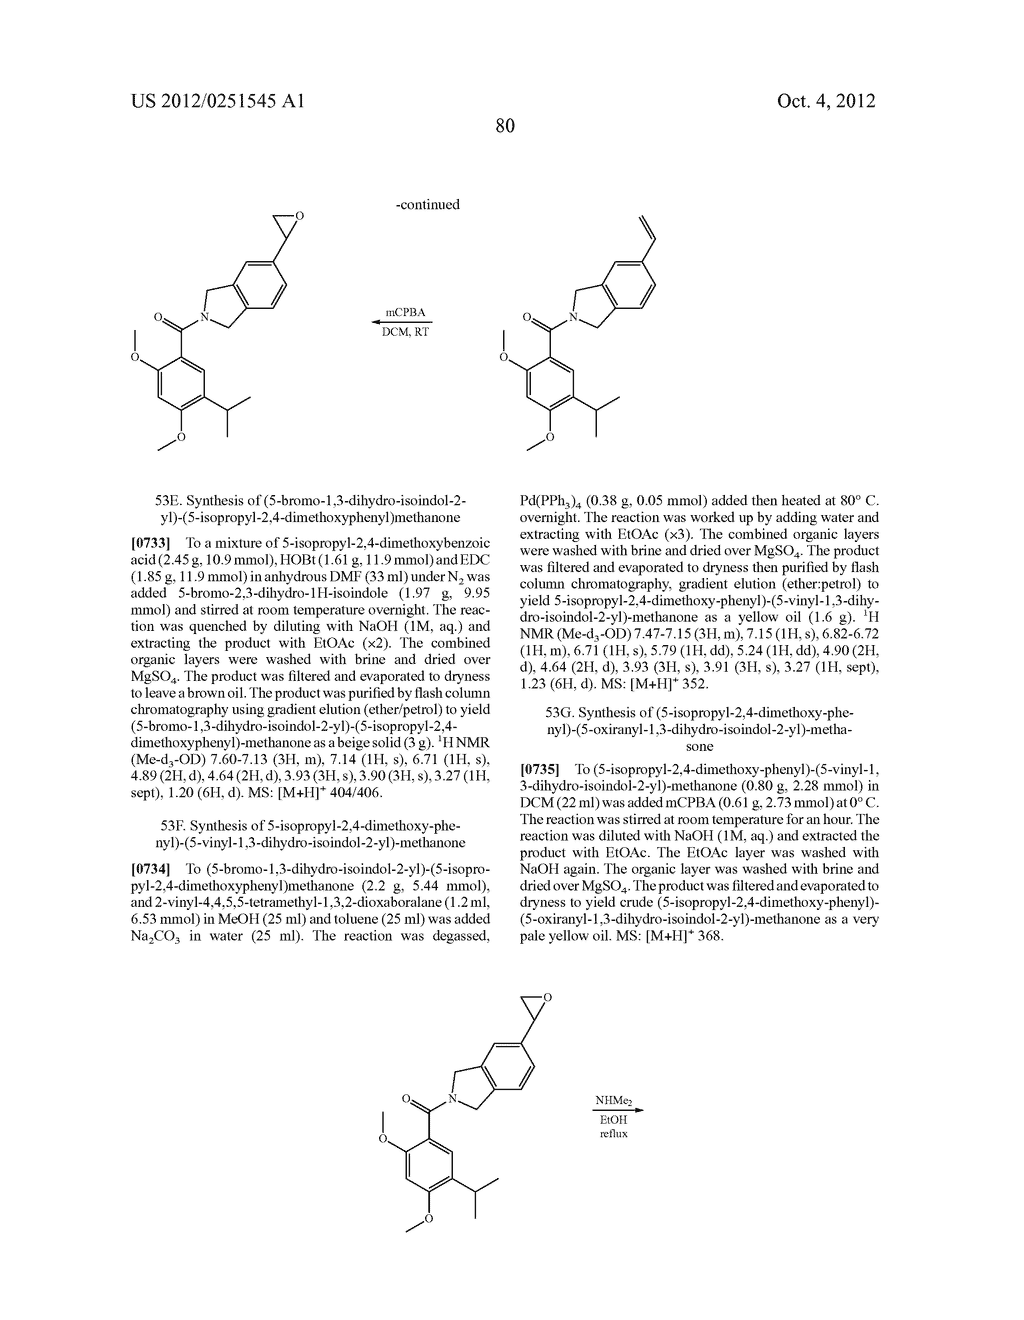 Therapeutic Combinations Of Hydroxybenzamide Derivatives As Inhibitors Of     HSP90 - diagram, schematic, and image 81